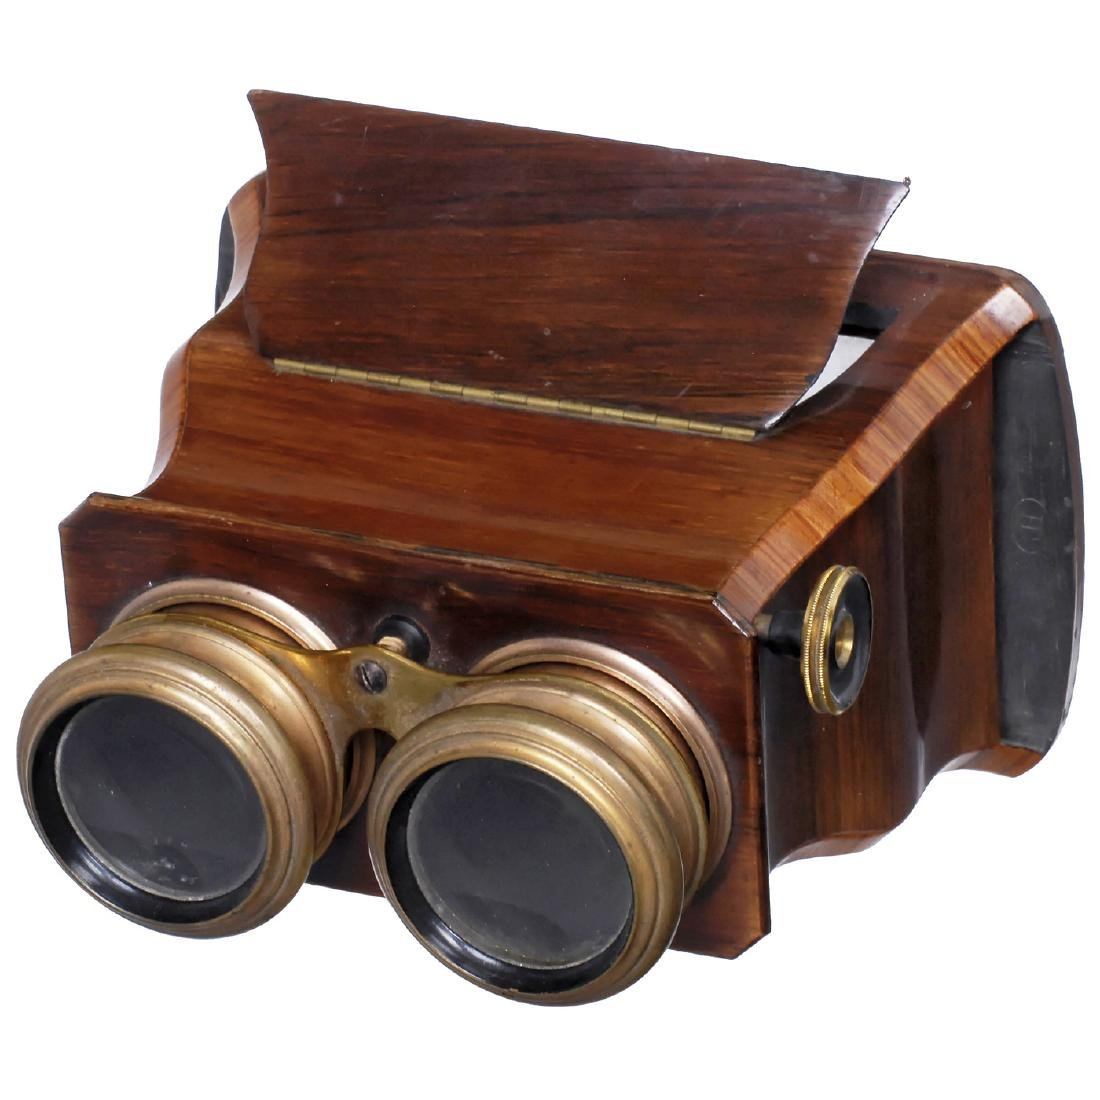 Stereo Viewer by Negretti & Zambra, c. 1880